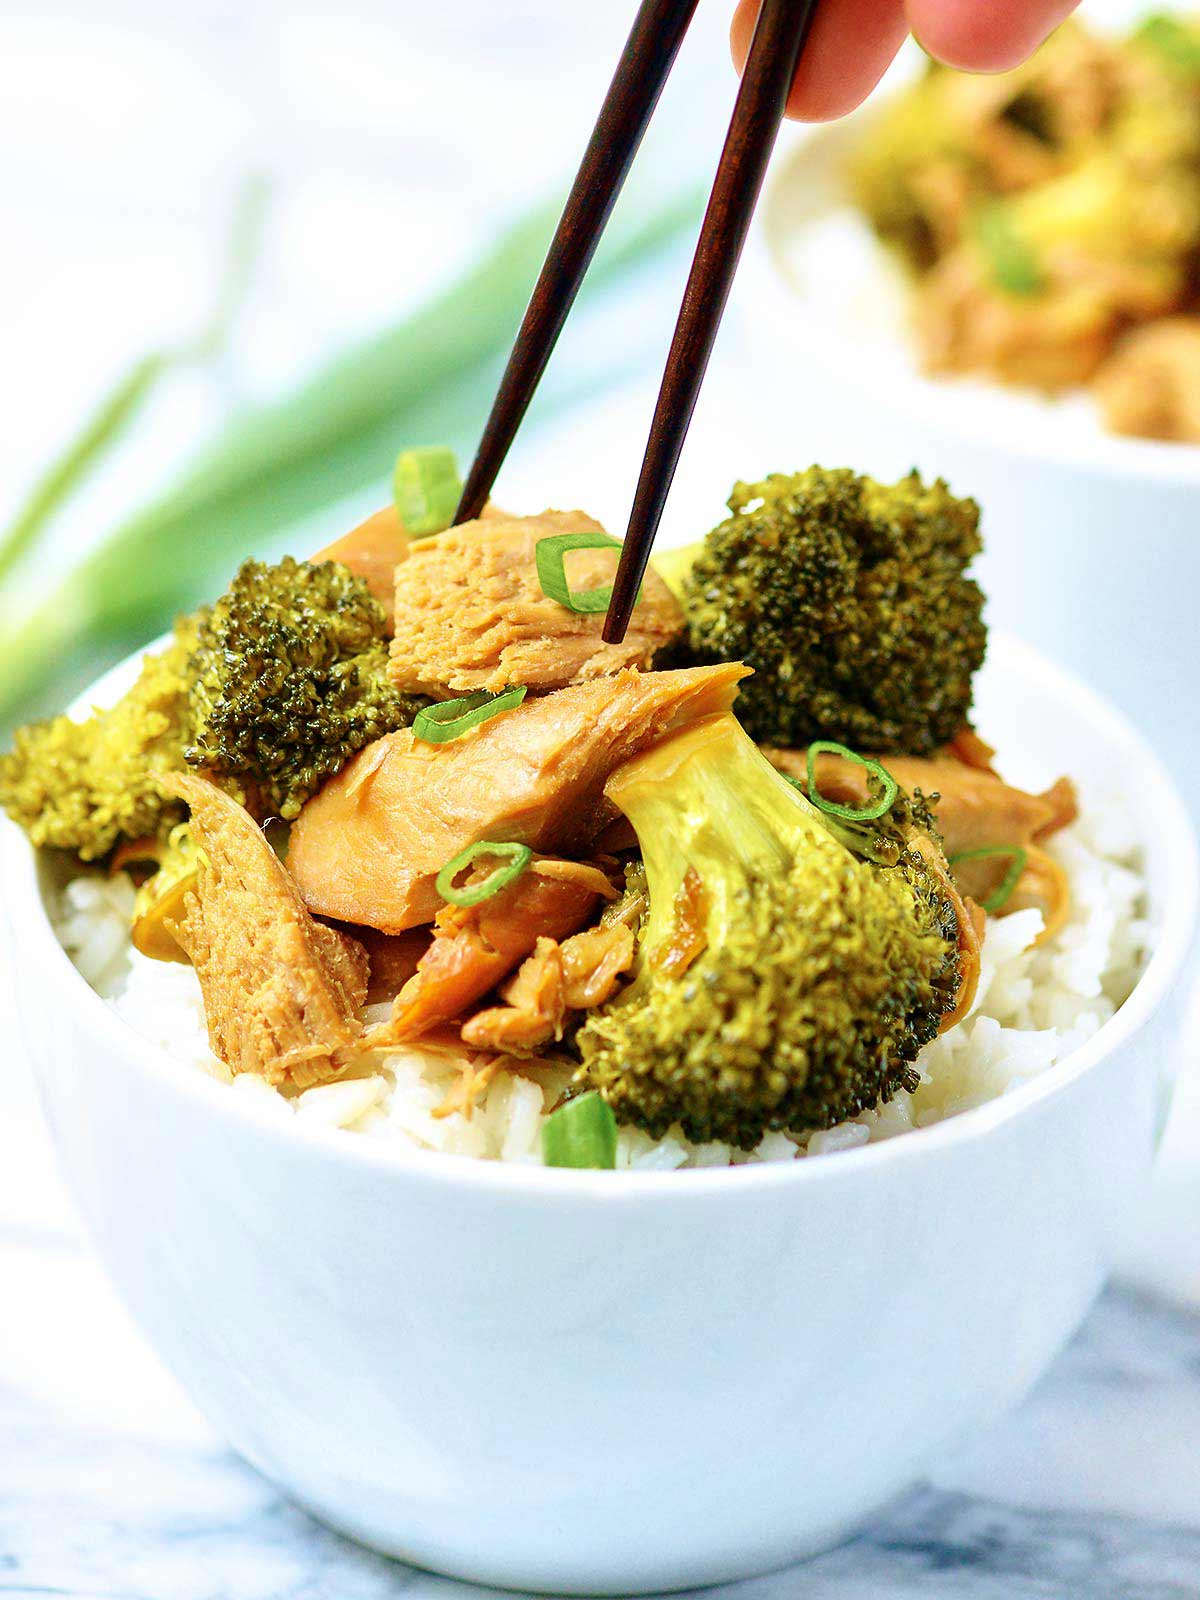 Make The Most Irresistibly Healthy Crockpot Meals With These 26 Recipes